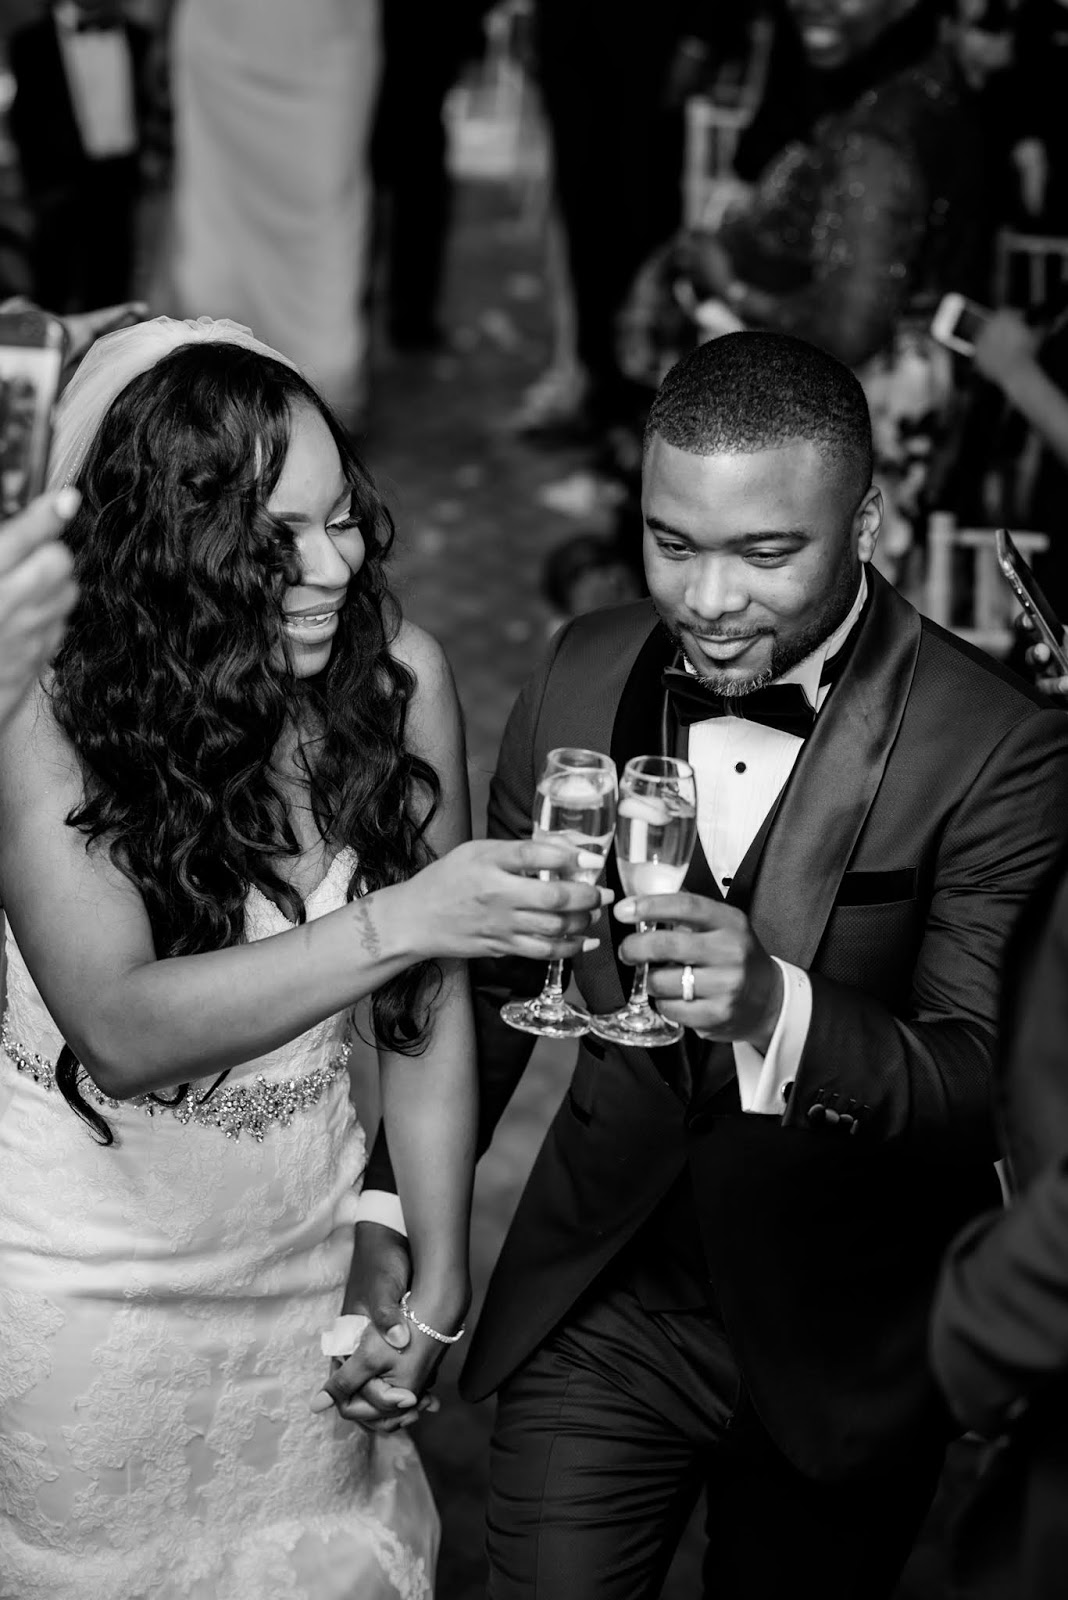 The couple sharing a toast for a successful memorable day